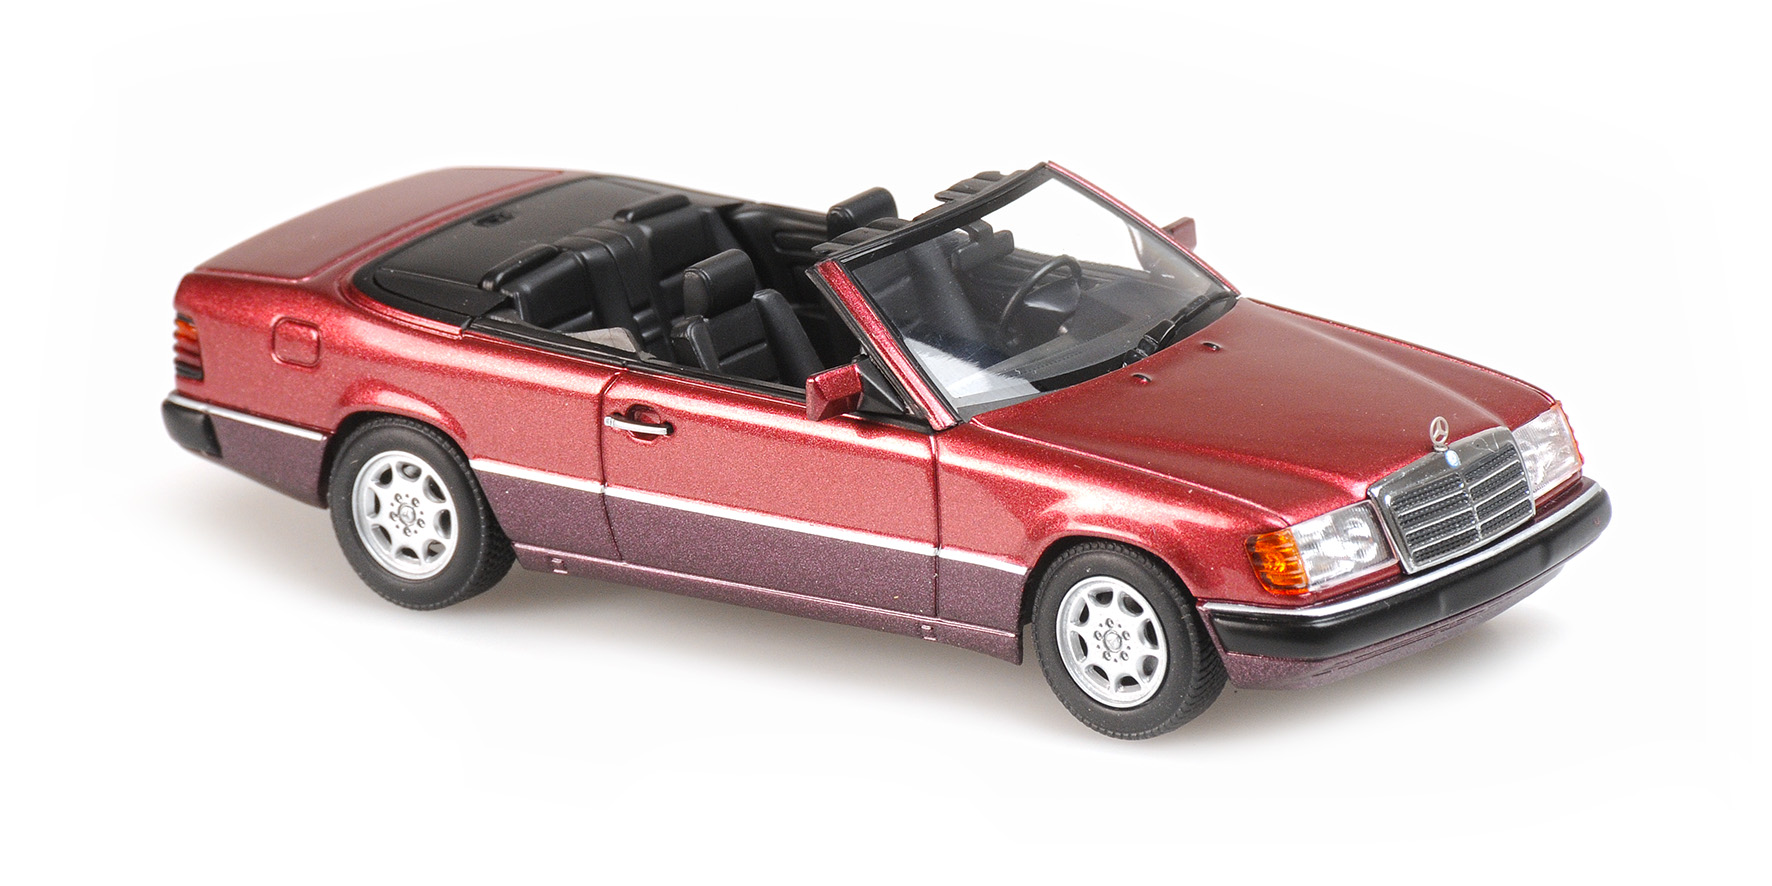 Mercedes-Benz 300 CE Cabriolet 1991 Rood Metallic